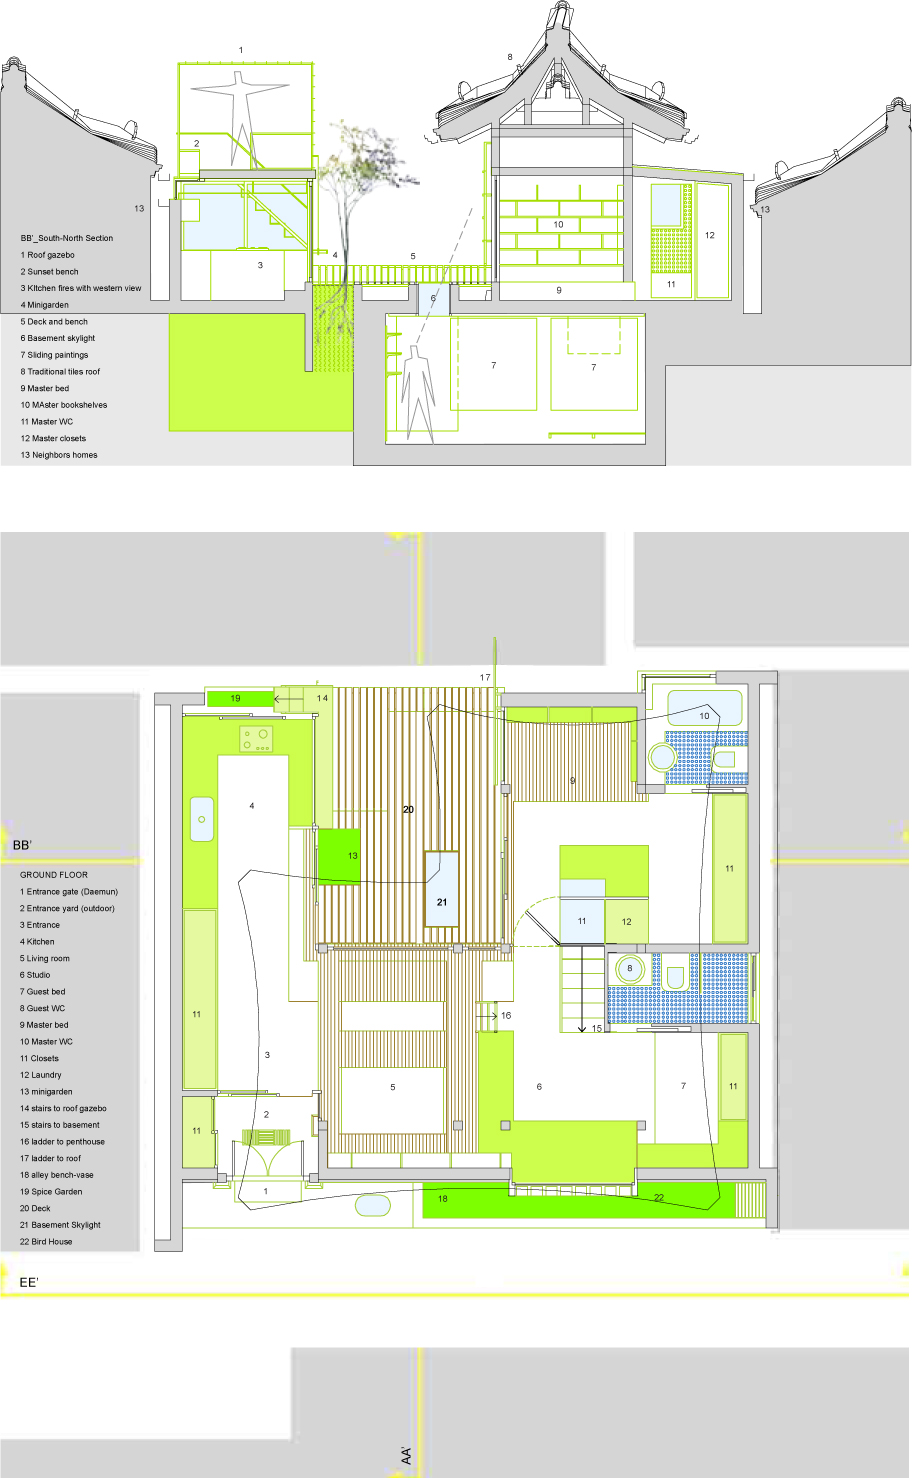 Hanok zeroundicipi it zeroundicipi it for Floorplan com